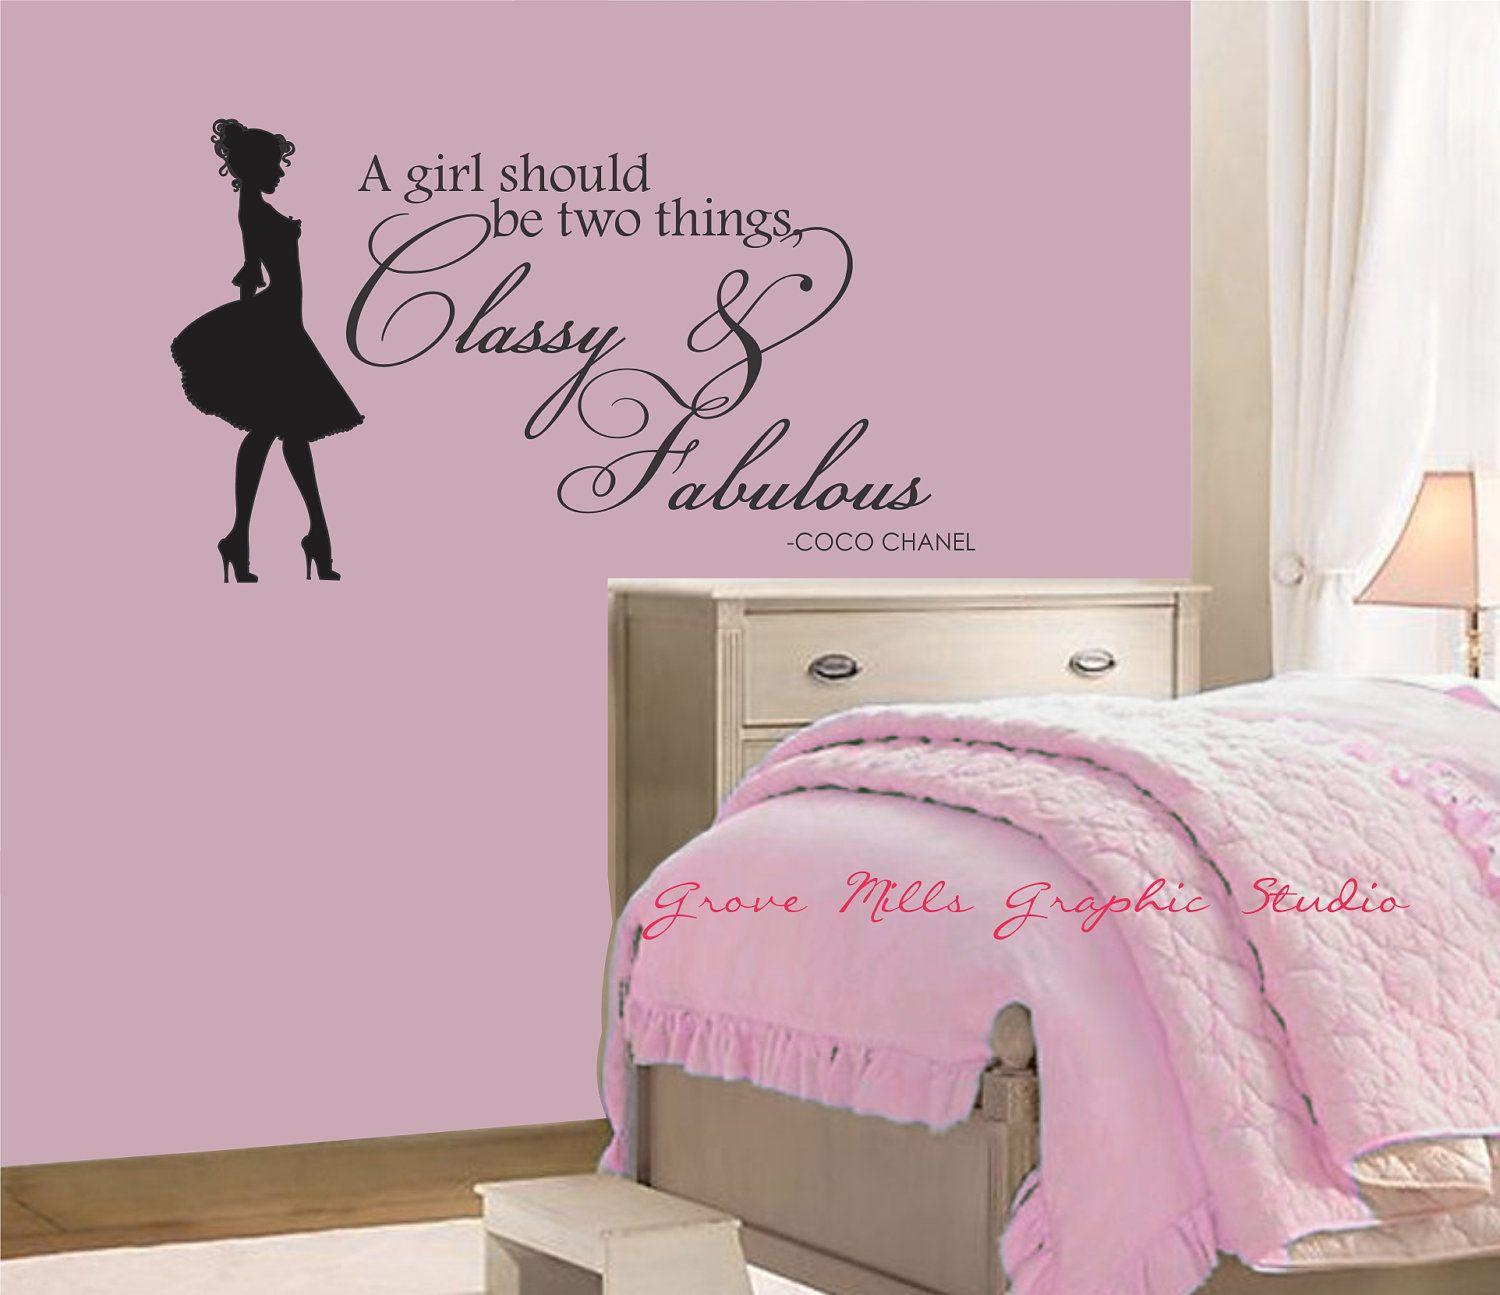 Once Upon a Time Princess Eliza Wall Sticker Decal Bed Room Art Girl//Baby